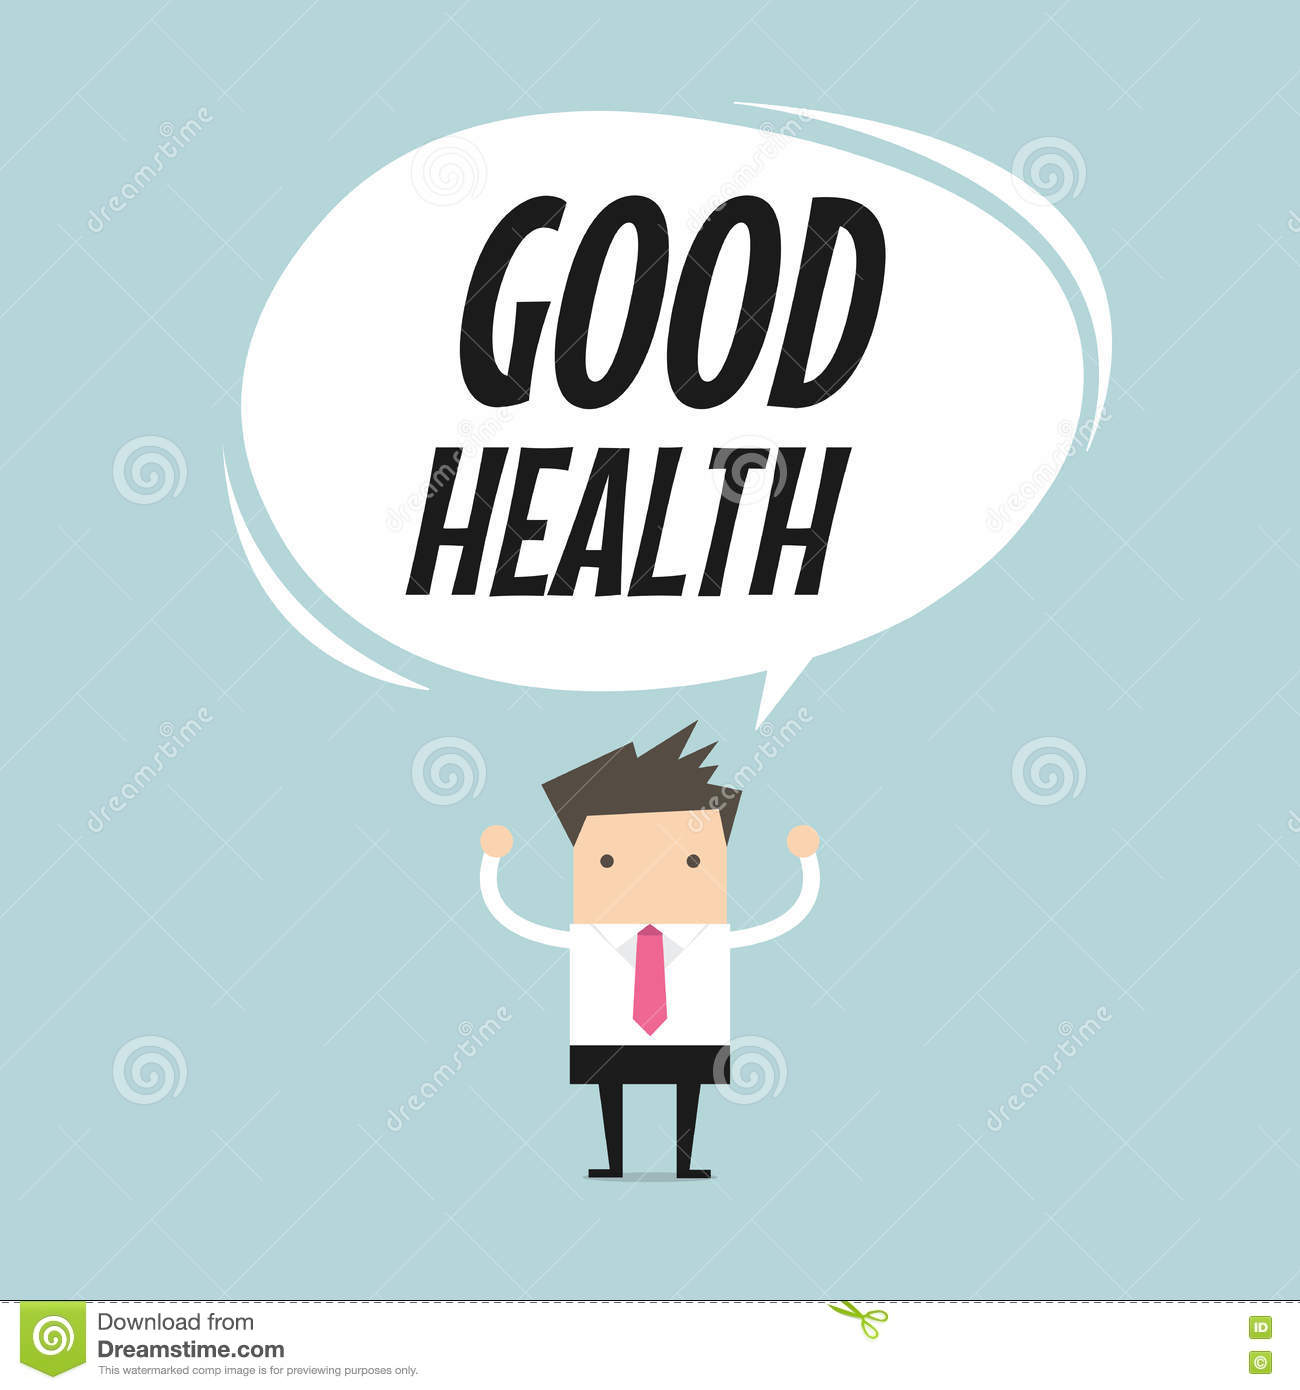 Businessman standing with good health word balloon, healthy lifestyle concept.